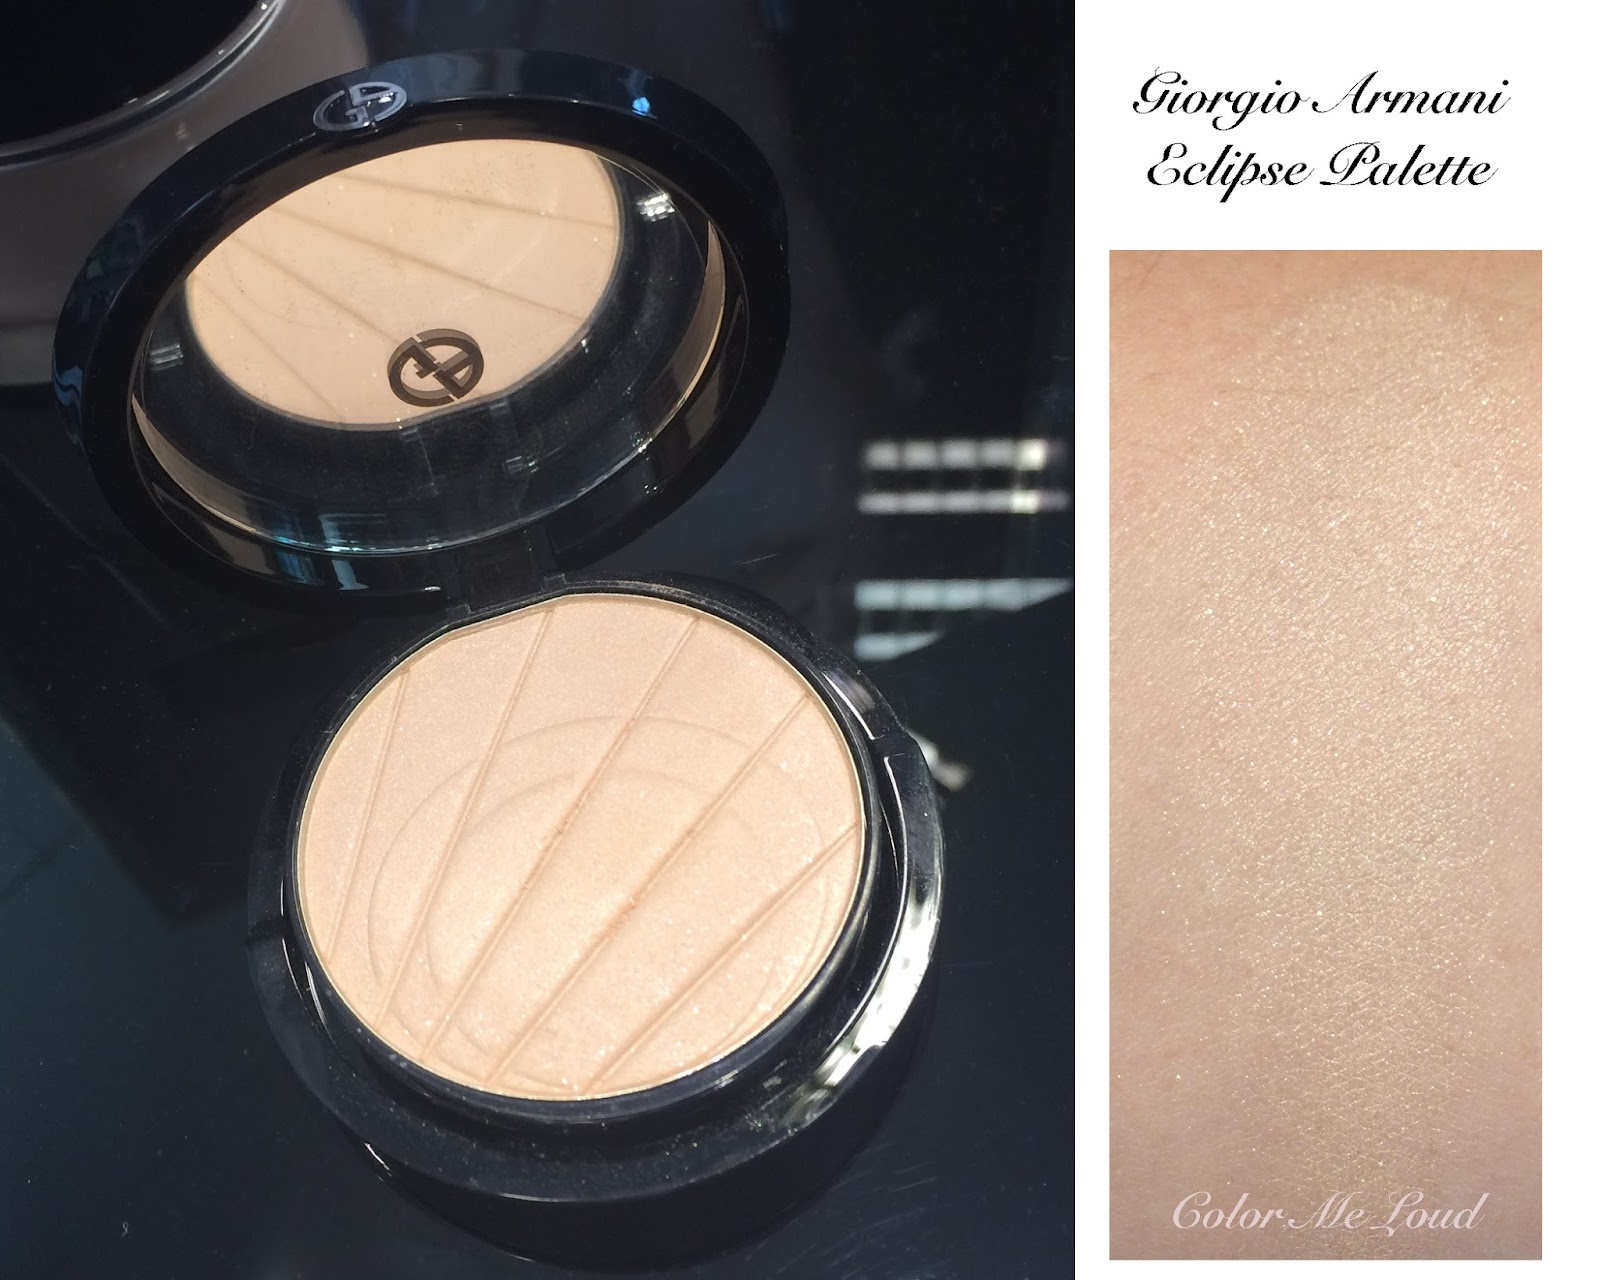 Armani giorgio eclipse summer makeup collection forecasting dress for everyday in 2019